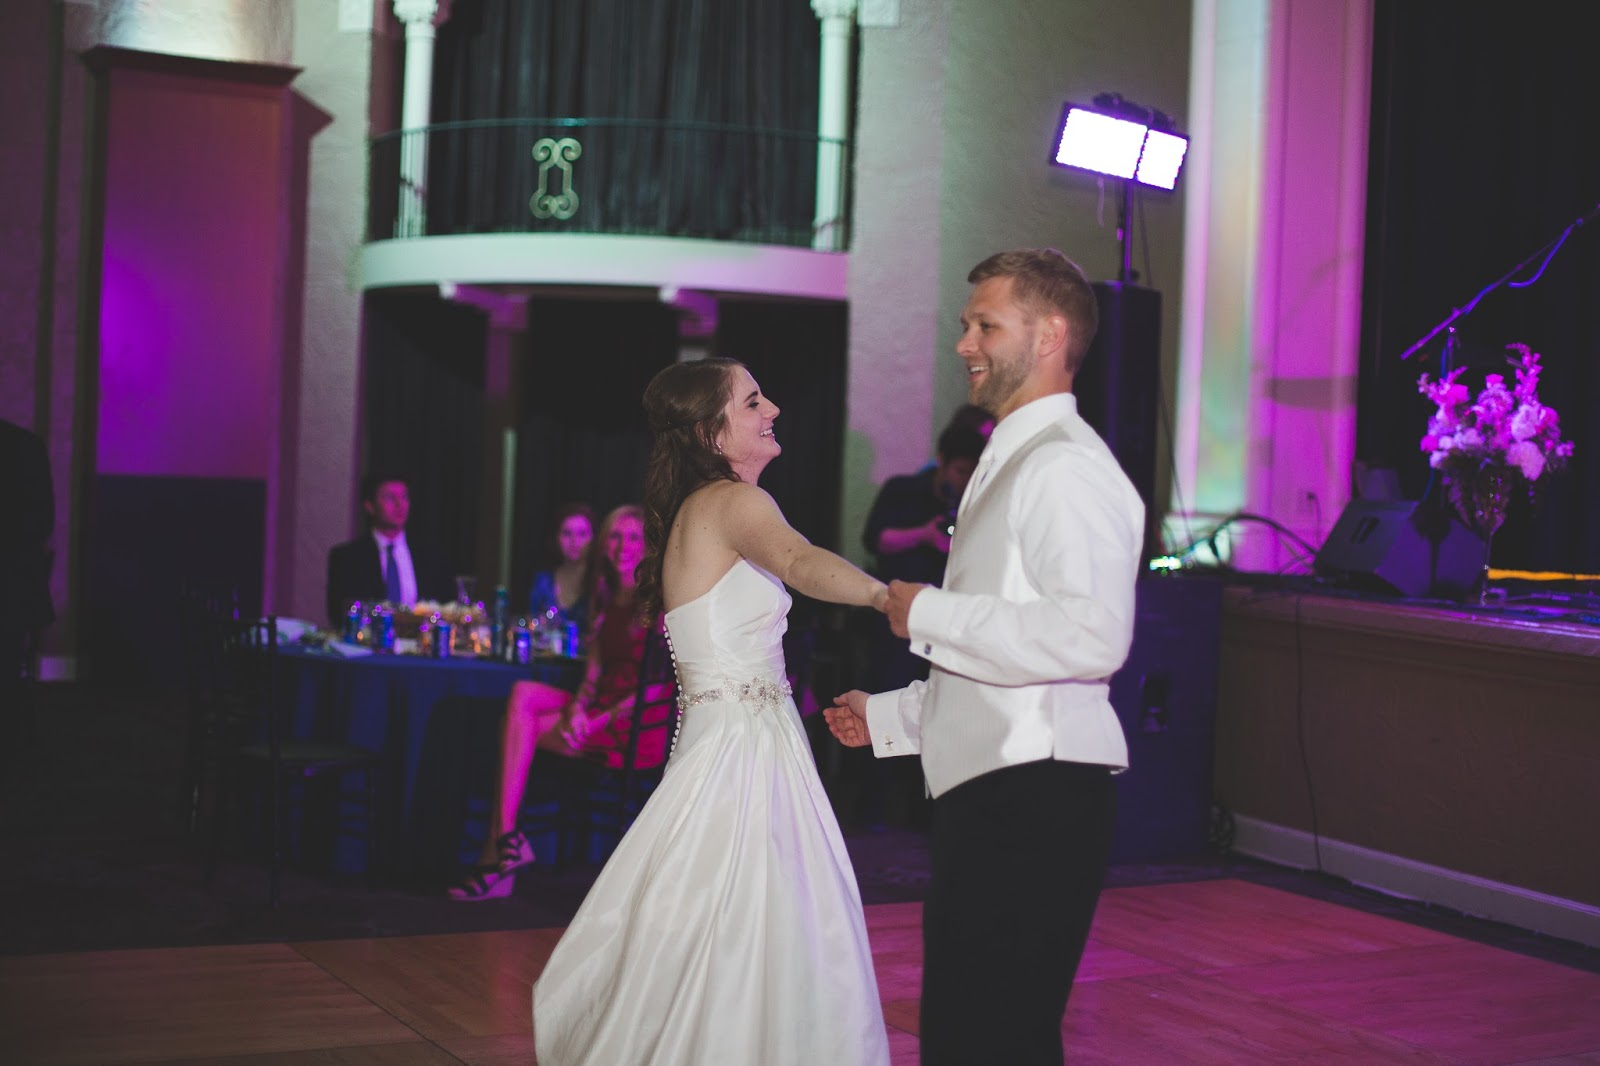 pictures of your first dance | a memory of us